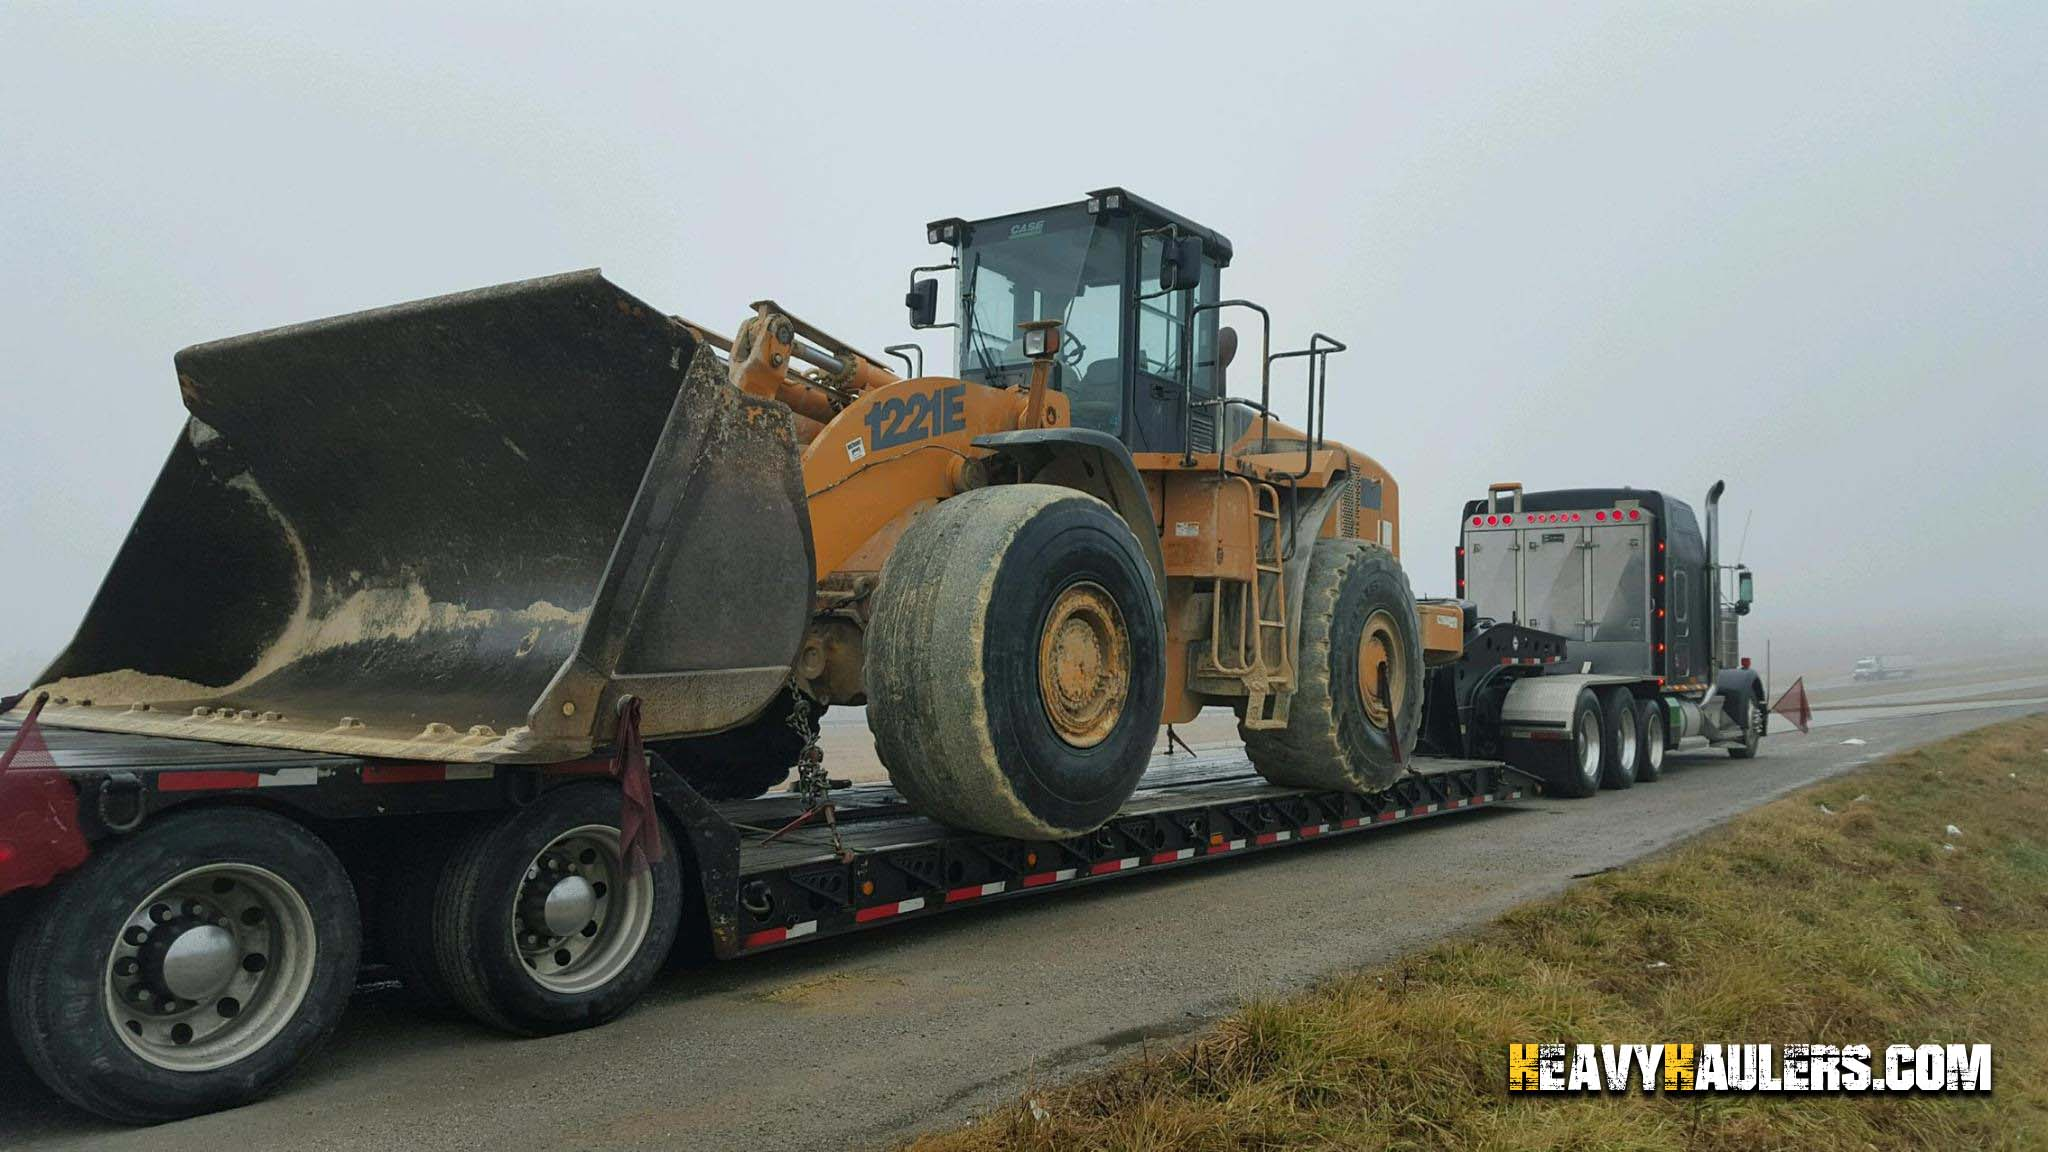 Case 1221E Wheel Loader Hauling